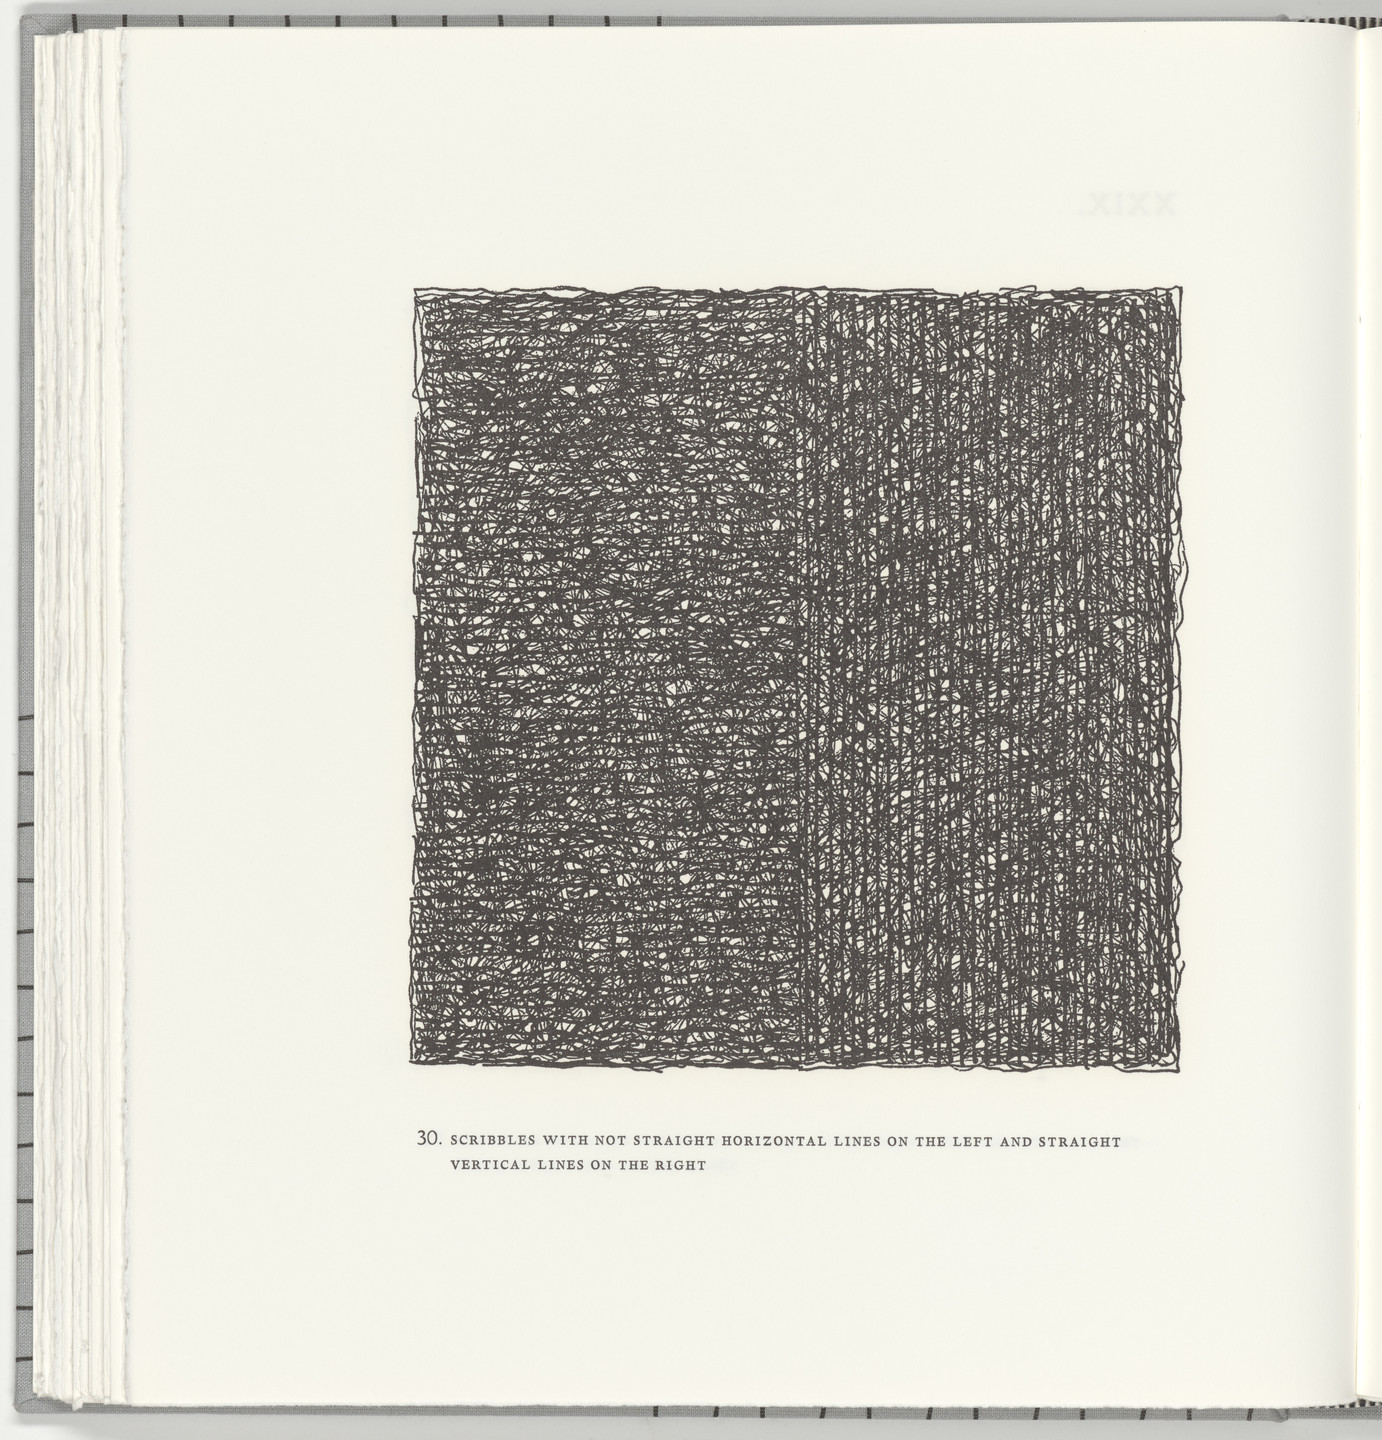 Sol LeWitt. Scribbles with Not Straight Horizontal Lines on the Left and Straight Vertical Lines on the Right (plate 30) from Squarings. 2003